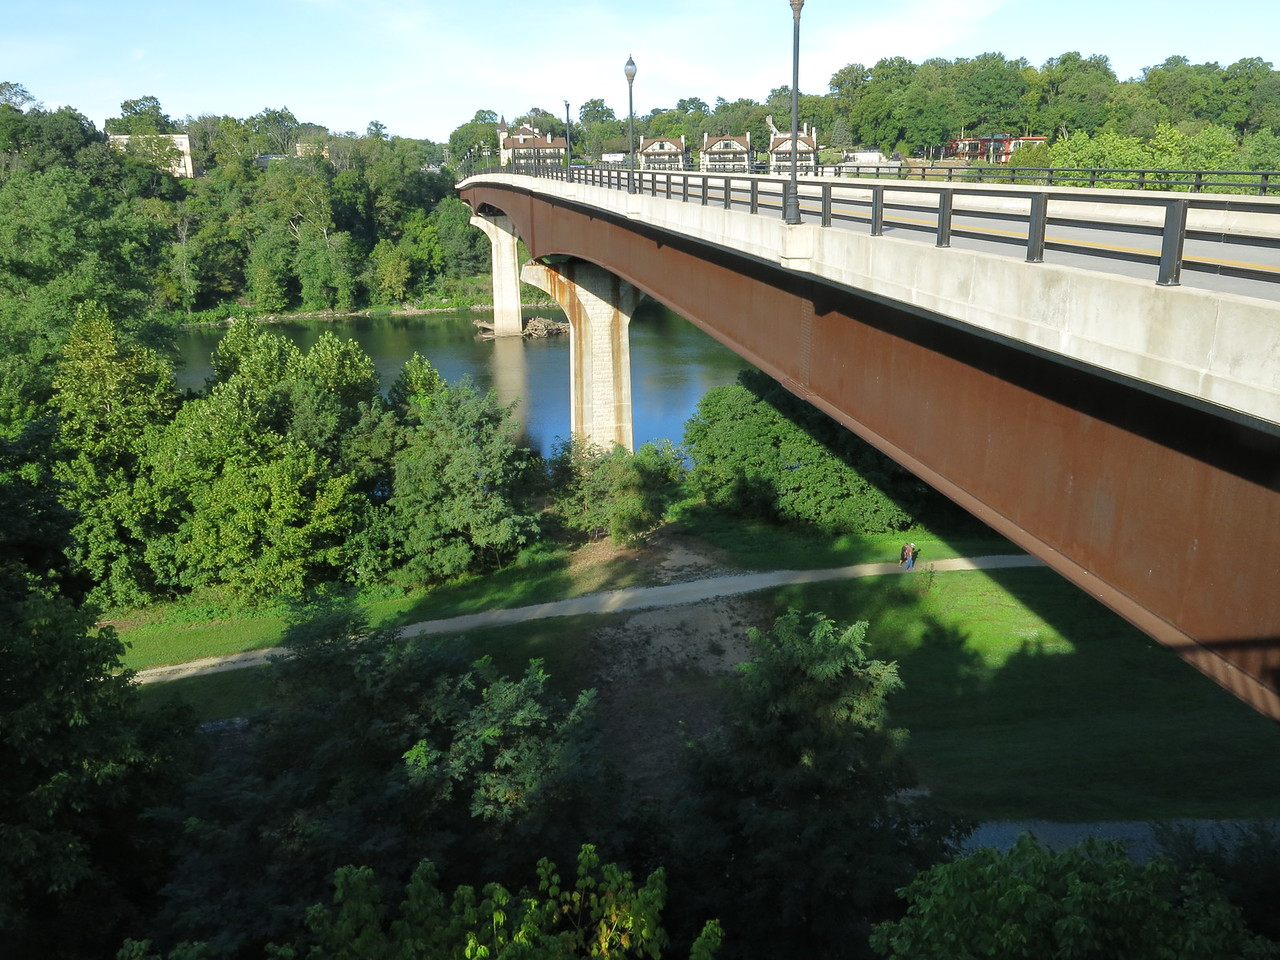 A look back at the Potomac River car bridge from the Maryland side.  The towpath is seen in the lower part of the image.